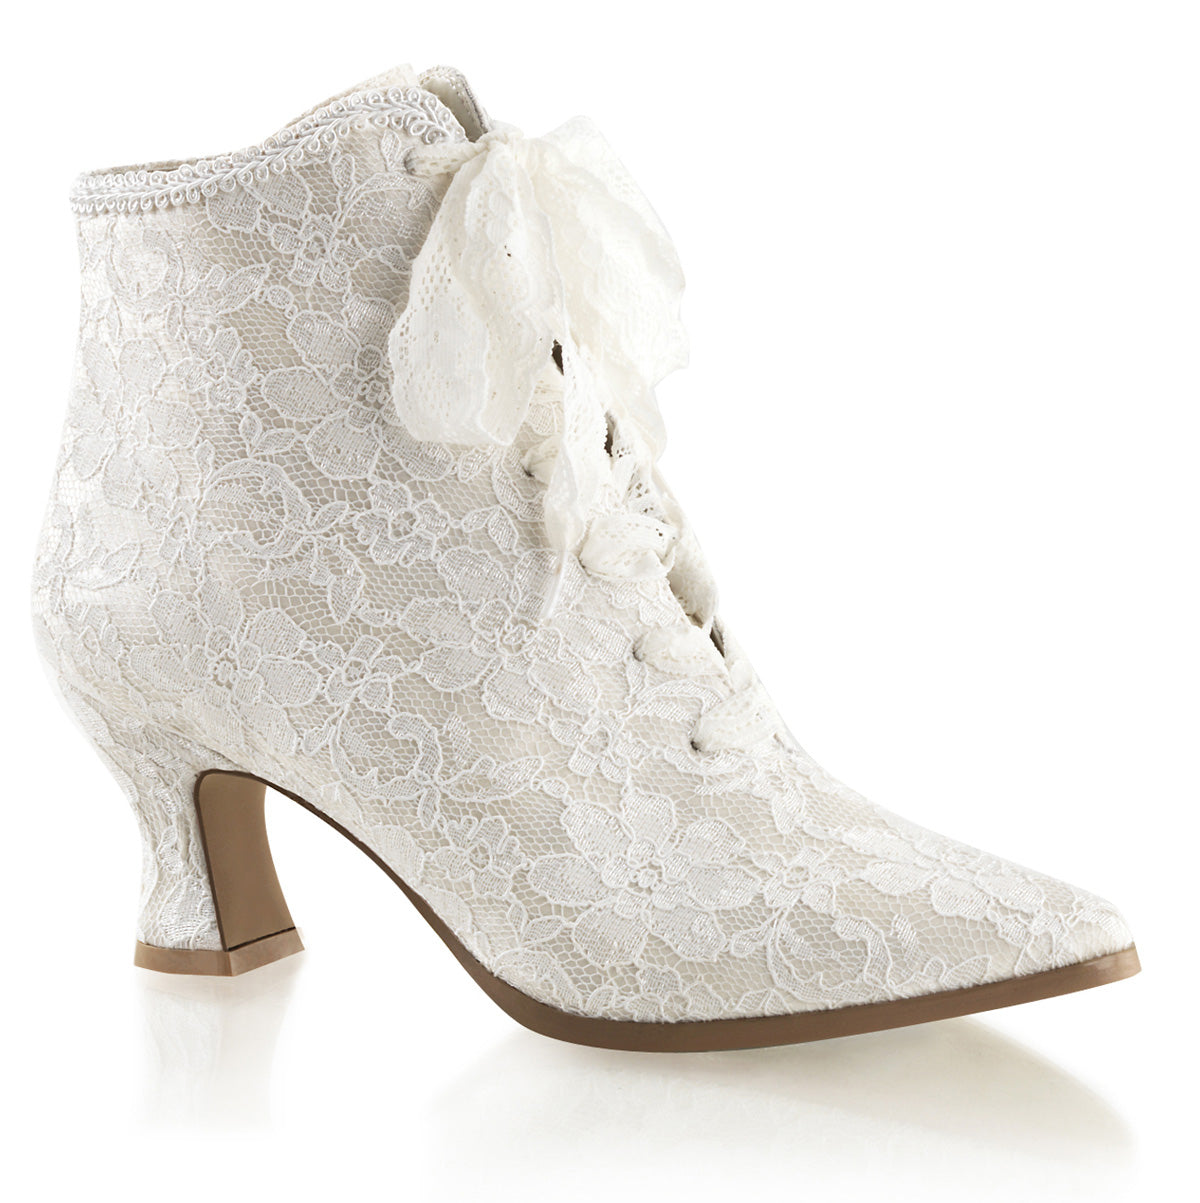 "2 3/4"" Flaired Heel Lace Up Ankle Bootie w/Lace Overlay"